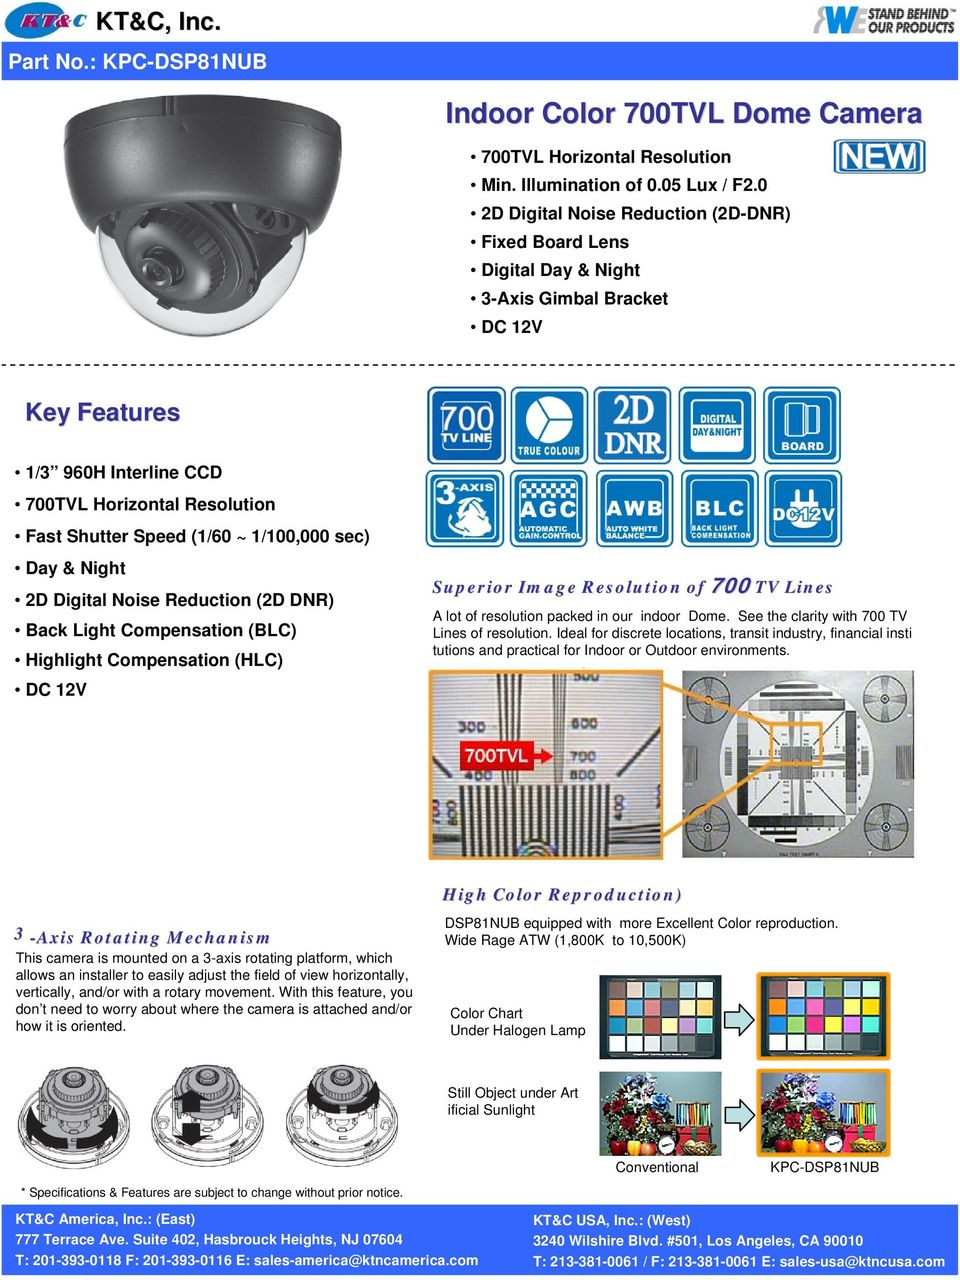 Collection of 700TVL Camera Specifications - PDF